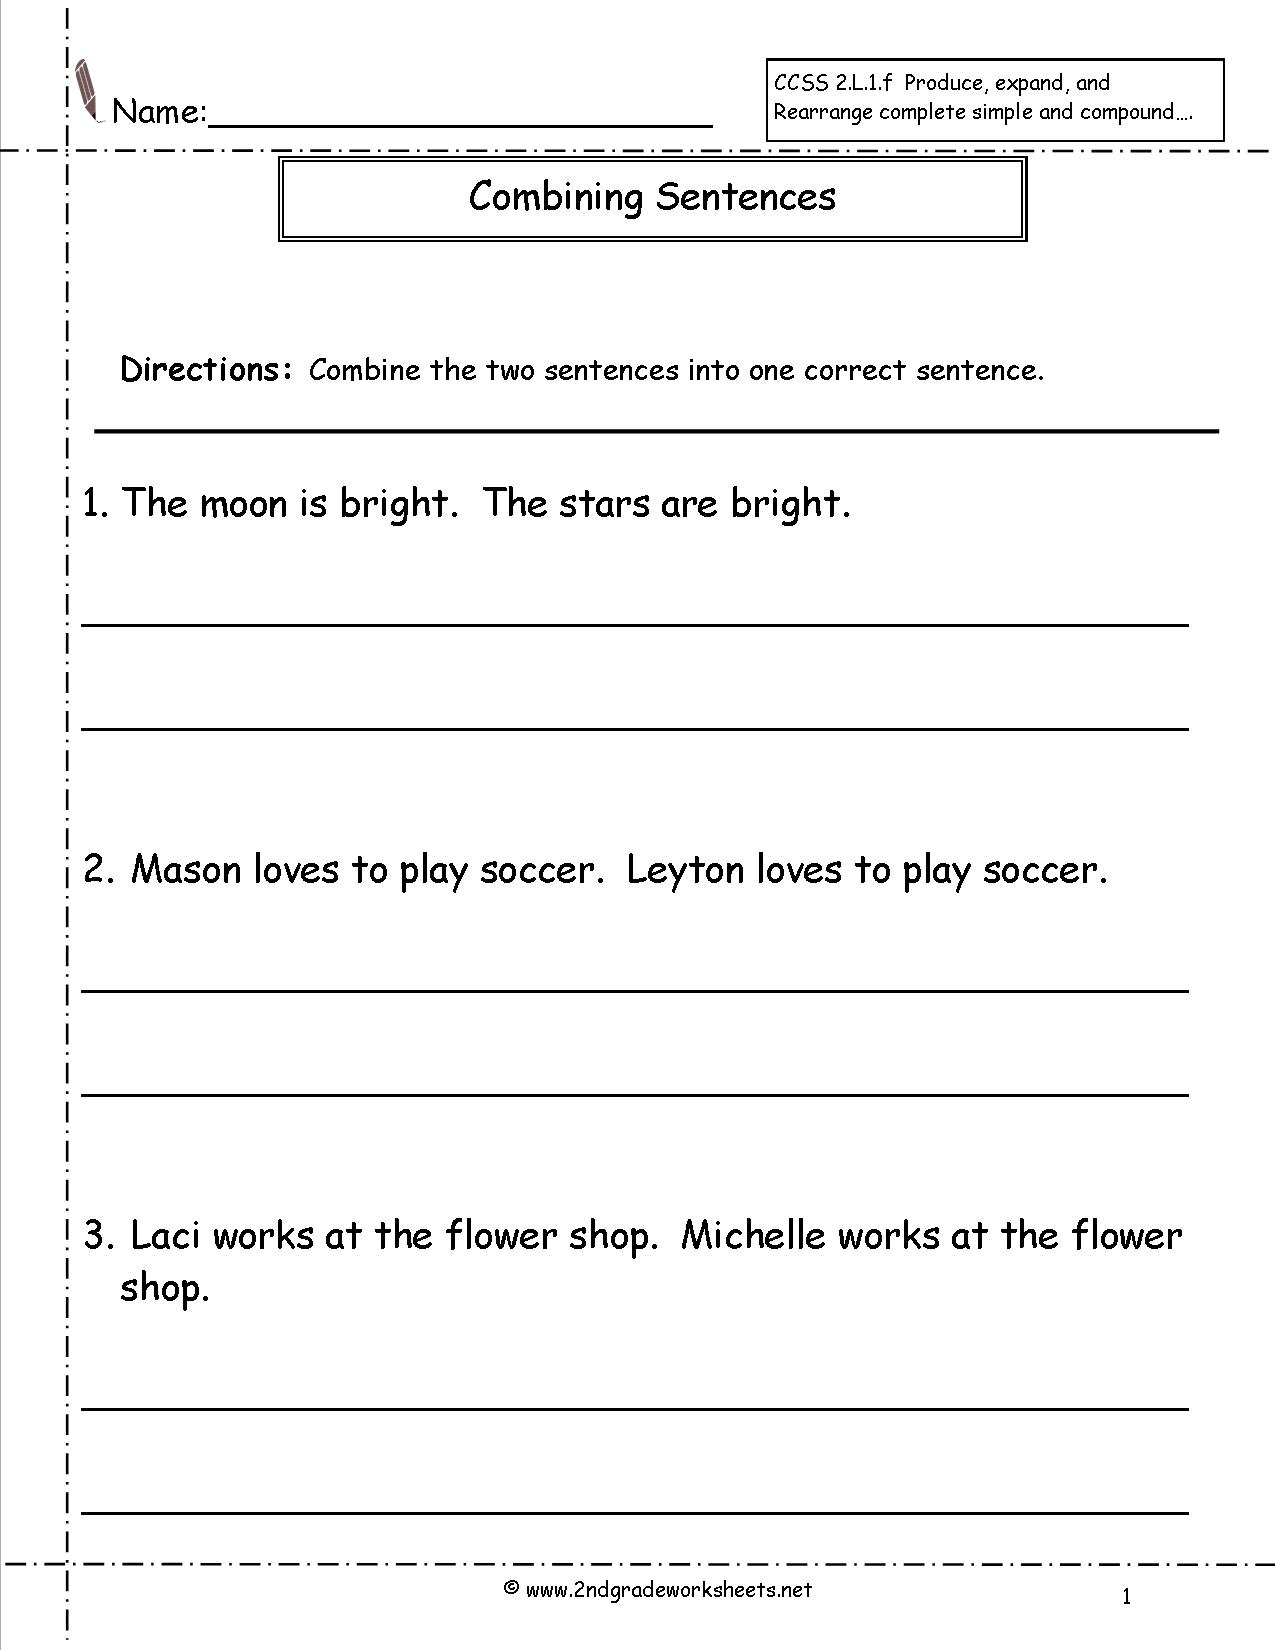 11 Best Images Of Combining Sentences Worksheets